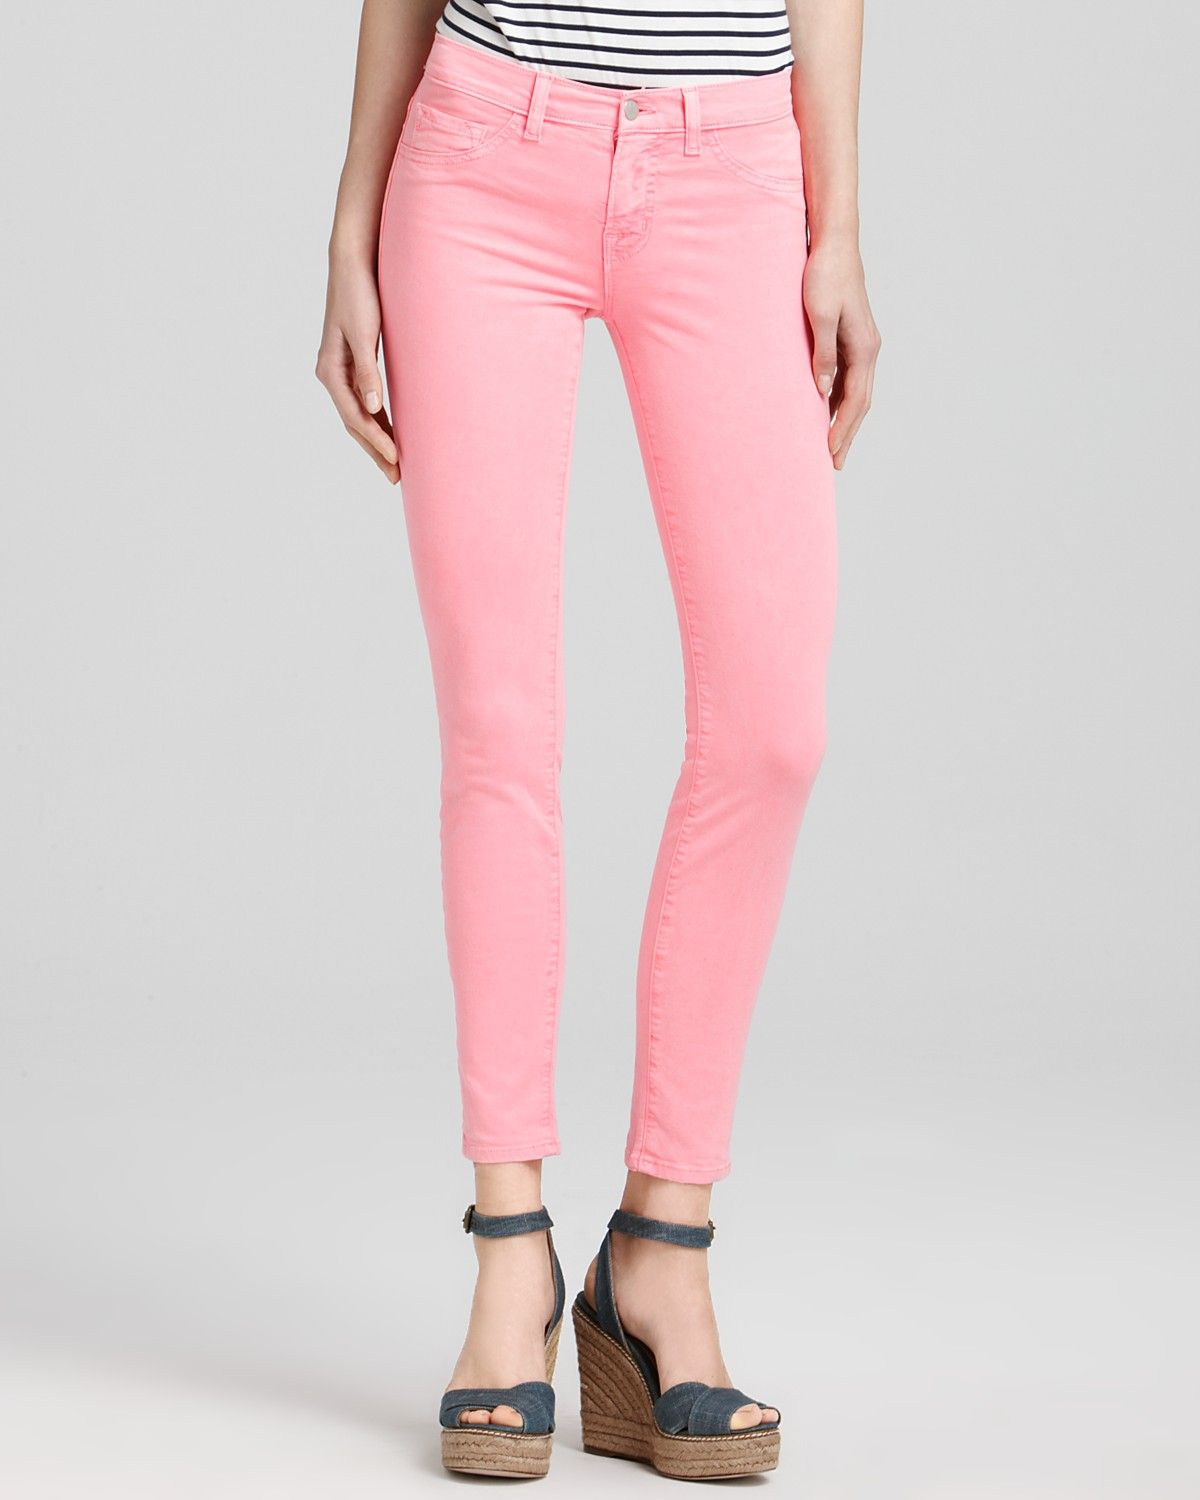 Fashion week Pink Neon skinny jeans for girls